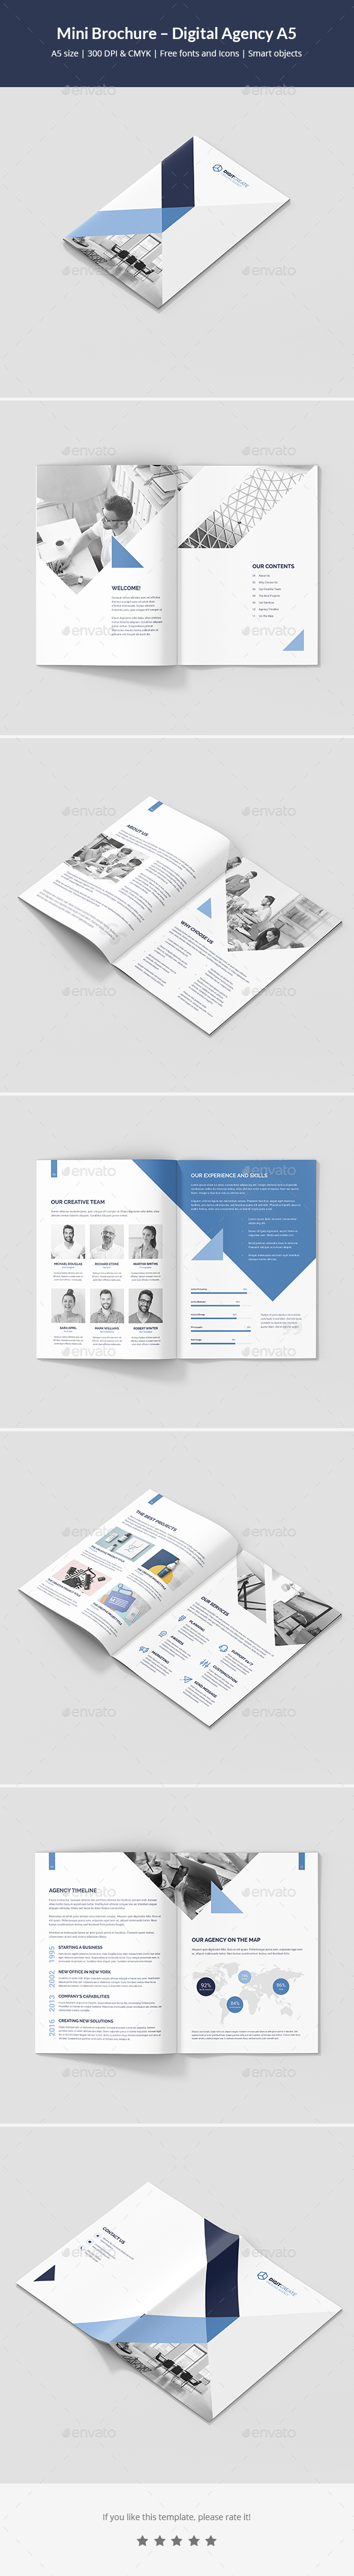 Mini Brochure – Digital Agency A5 - Corporate Brochures